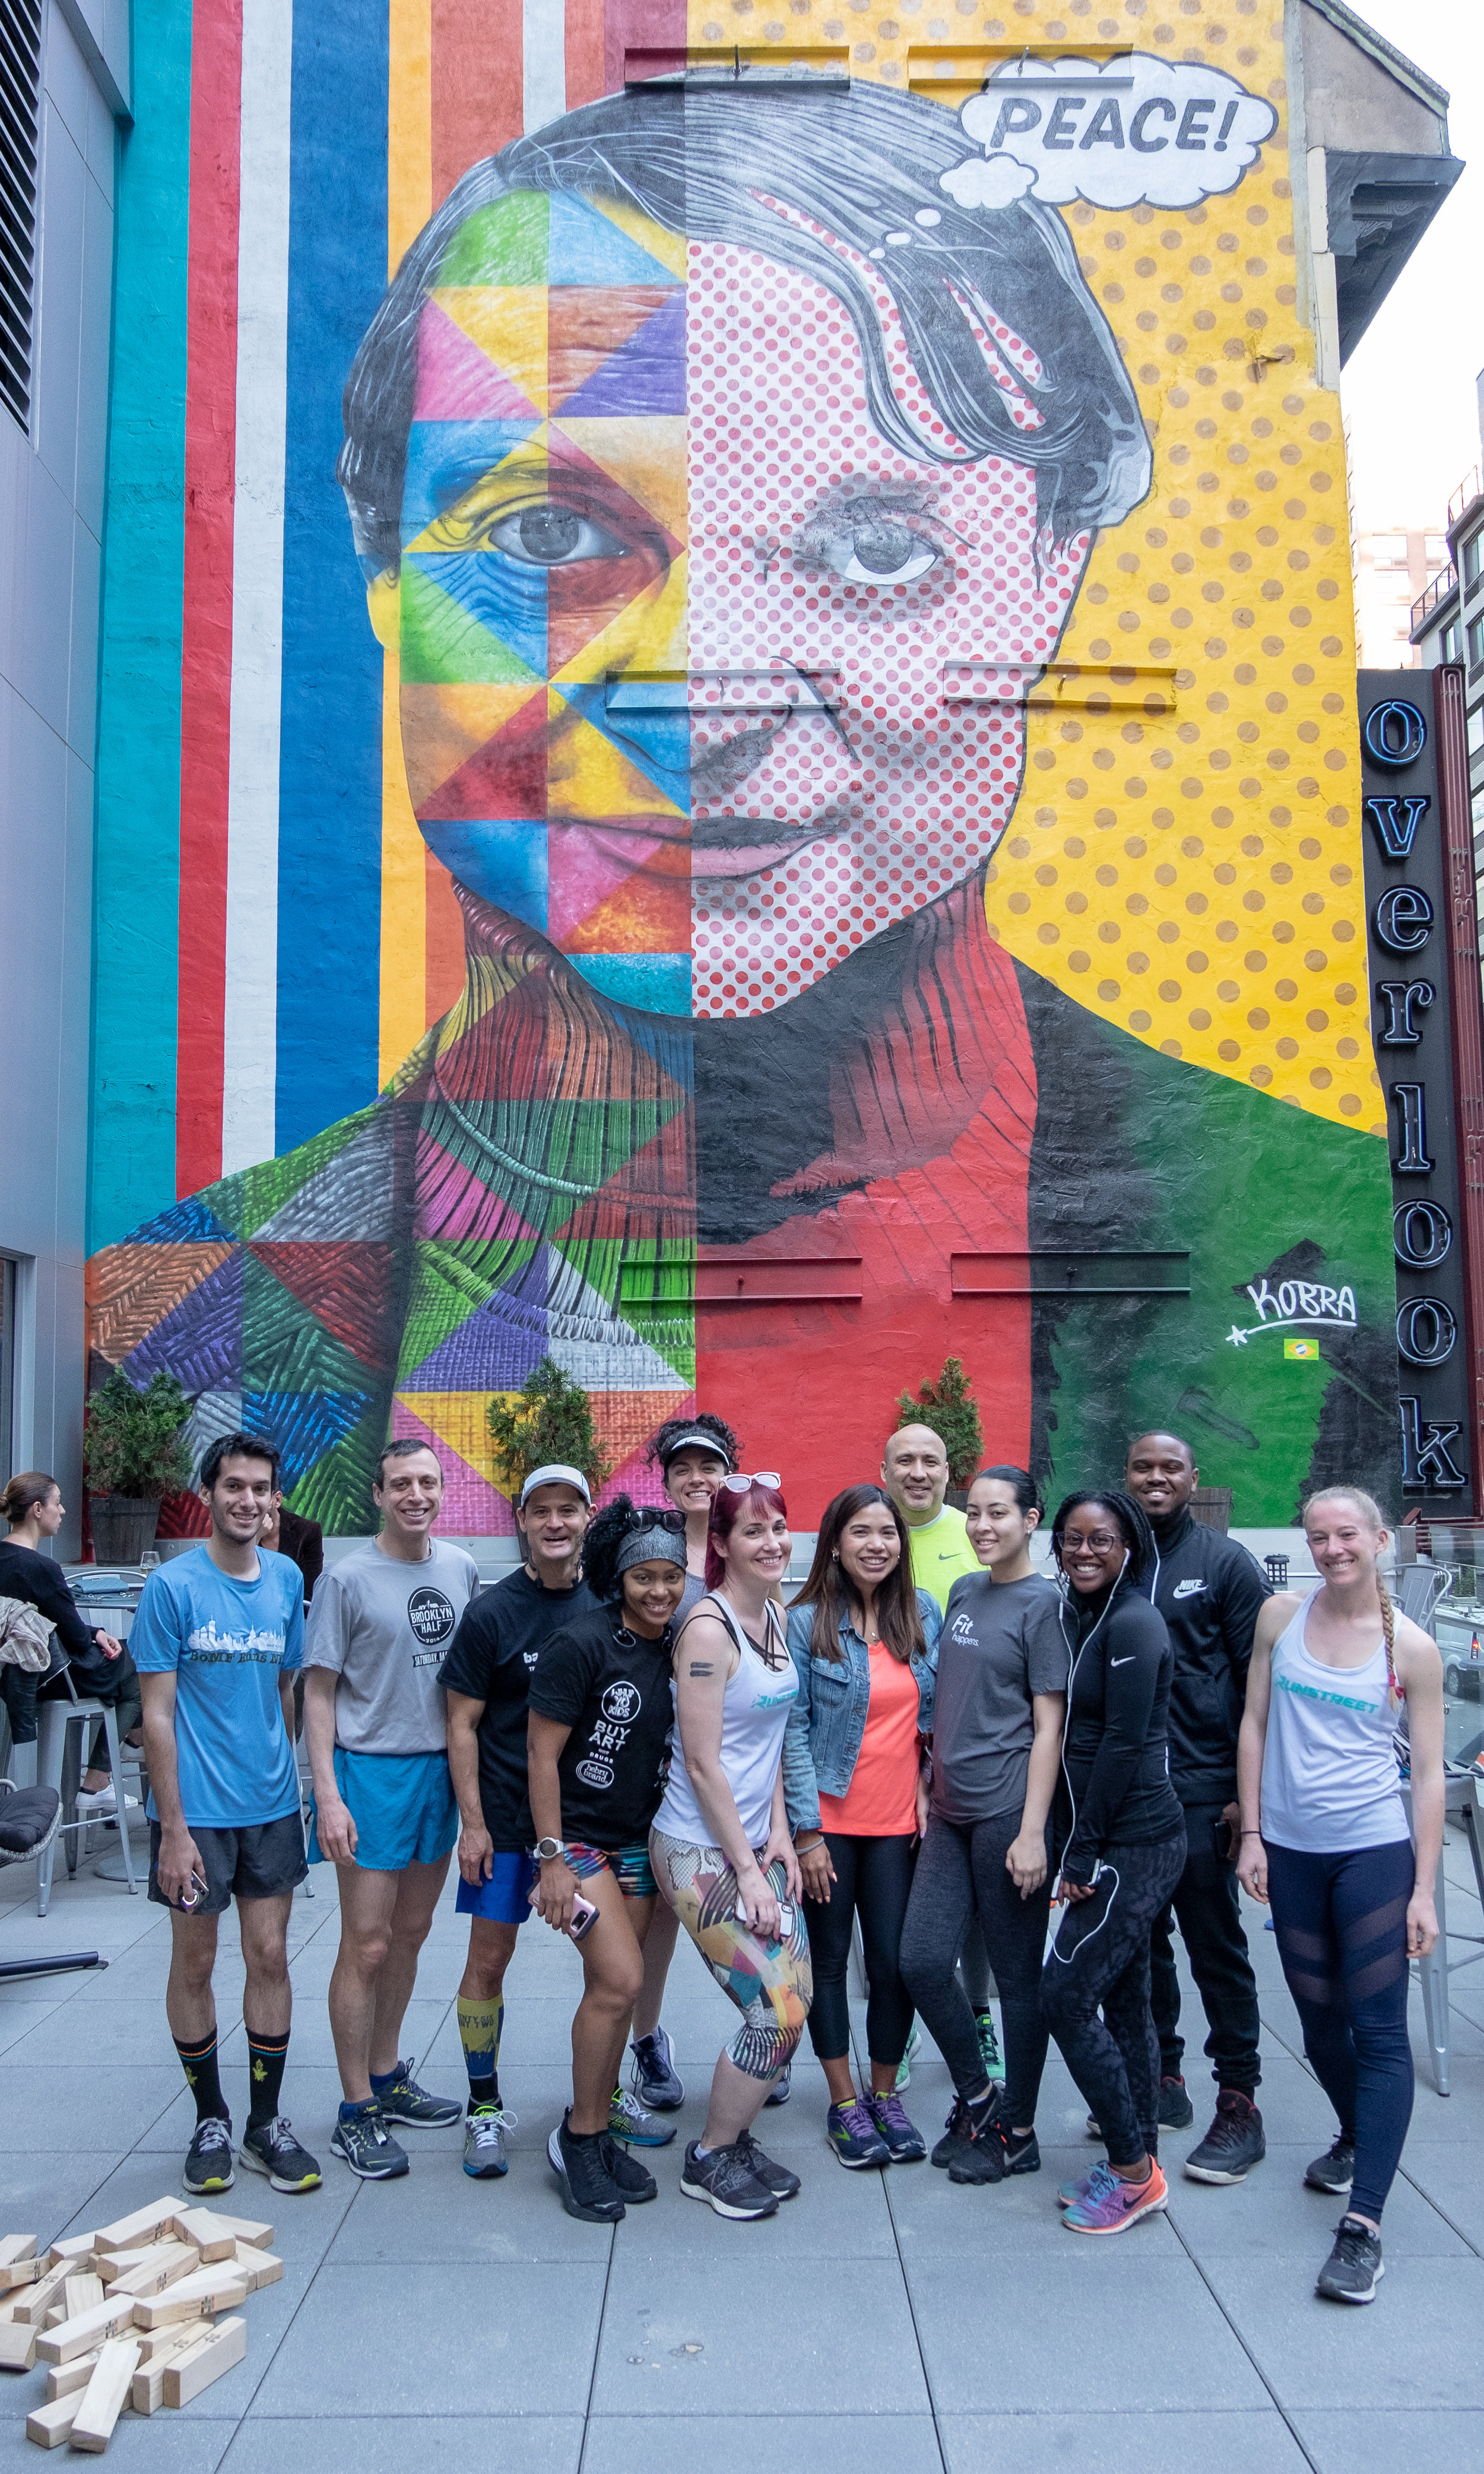 Mural at EVEN Hotels Midtown East by Kobra. Photos by Marques Jackson/ Filles Garçons Photography .